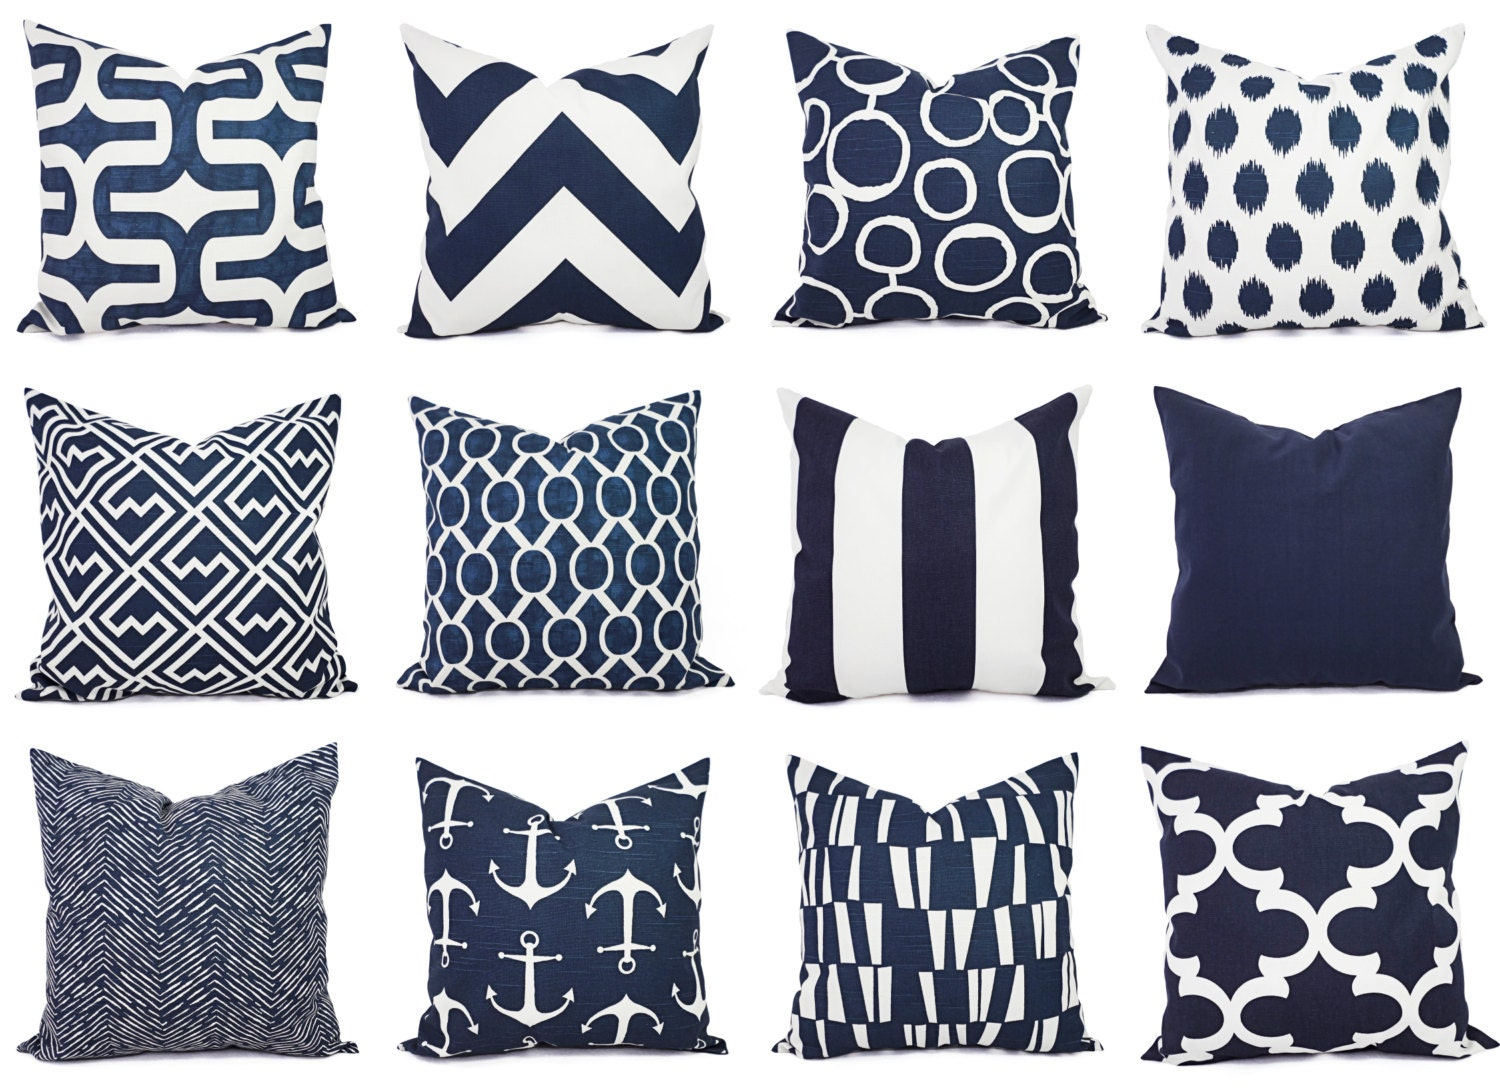 Throw Pillows Navy And White : Navy and White Pillow Cover Navy Blue Throw Pillow Cover